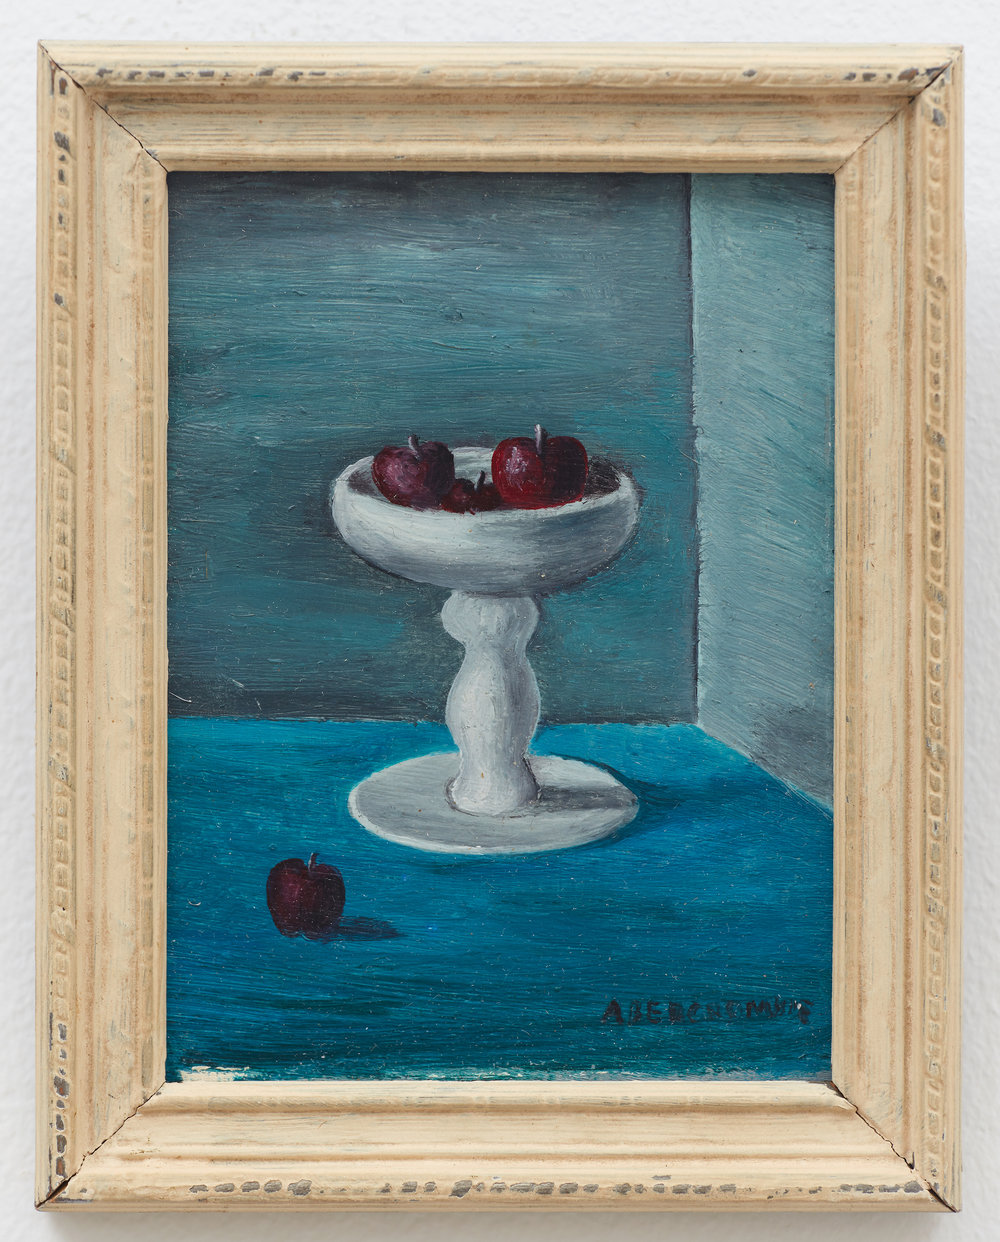 Untitled (Still Life with Apples) , c. 1940, Oil on masonite, 4 × 3 inches (unframed); 4 3/4 3 × 3/4 inches (framed). Illinois State Museum, Illinois Legacy Collection, Gift of the Gertrude Abercrombie Trust.